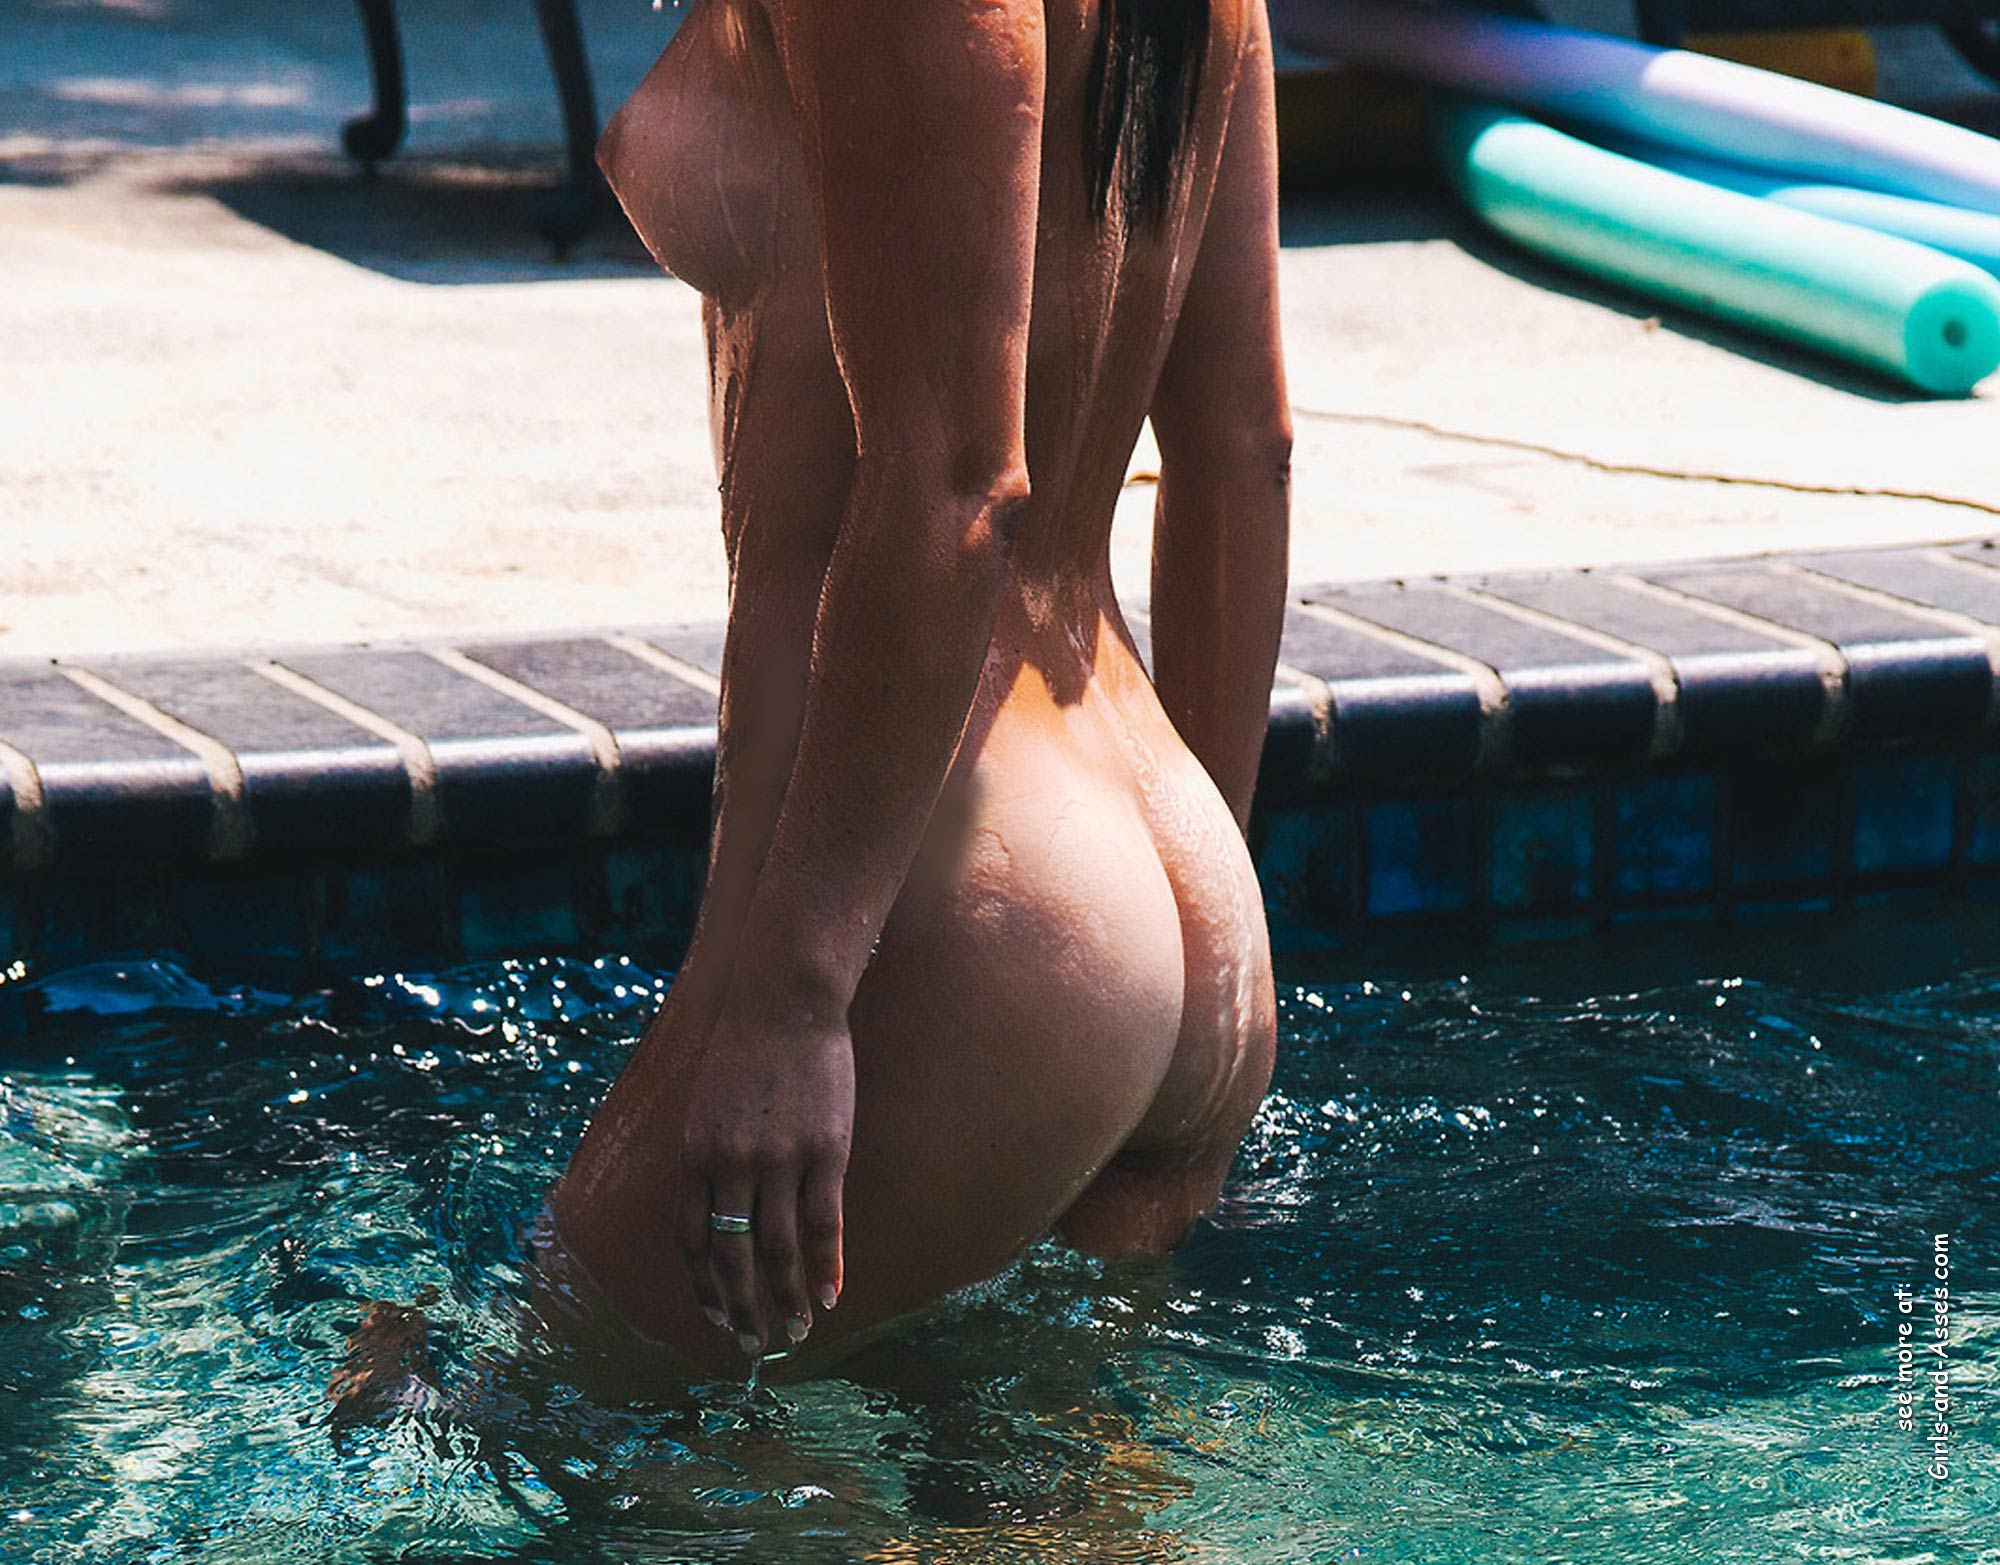 beautiful naked ass by the pool photo 00942